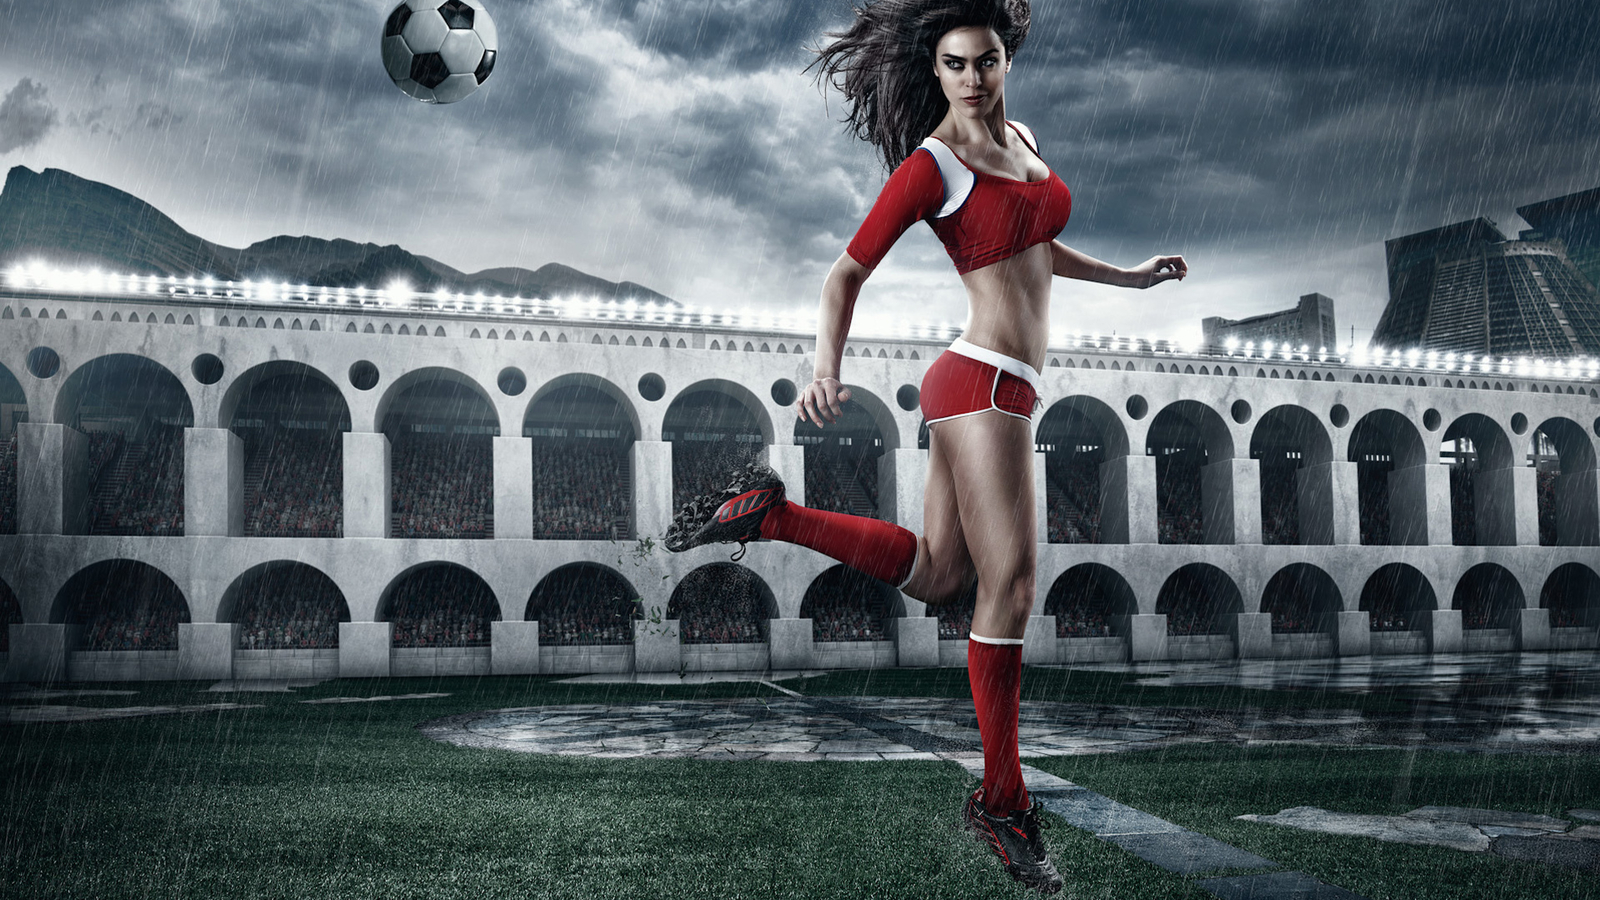 World Cup calendar wallpaper 49536